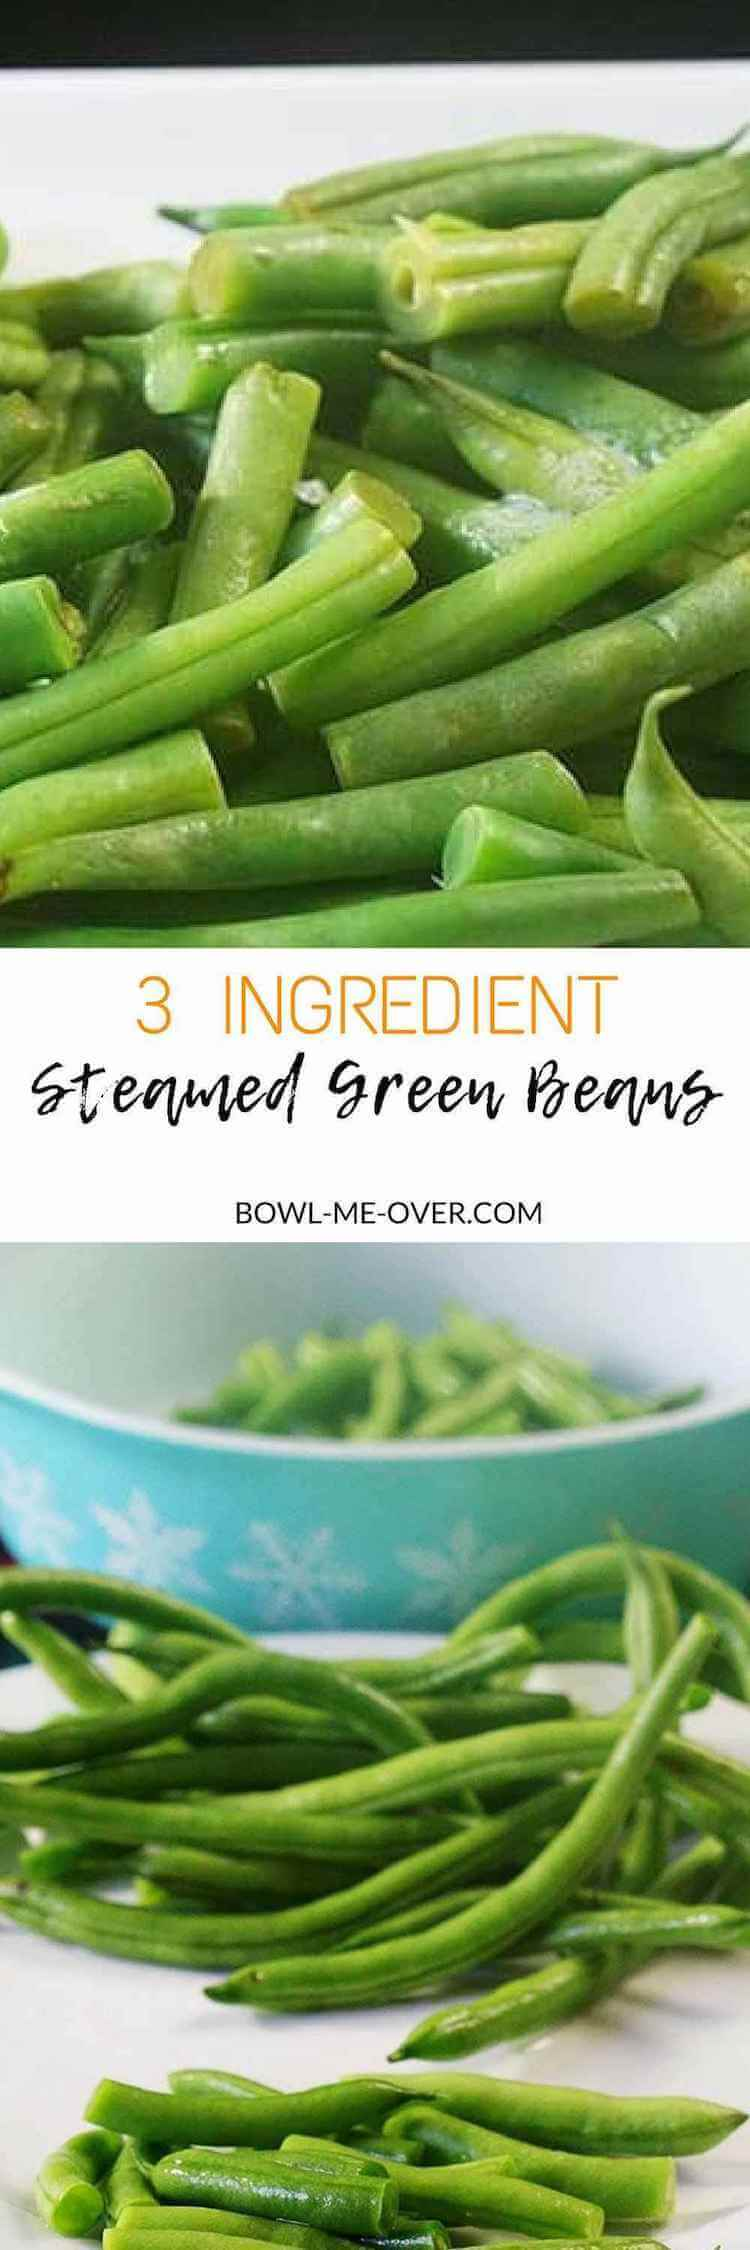 Lighten up your meal with an easy & quick side dish. Steamed Green Beans are an easy,  delicious side dish taking just minutes to make. #easysidedish #greenbeans #healthyside #steamedgreenbeans #bowlmeover